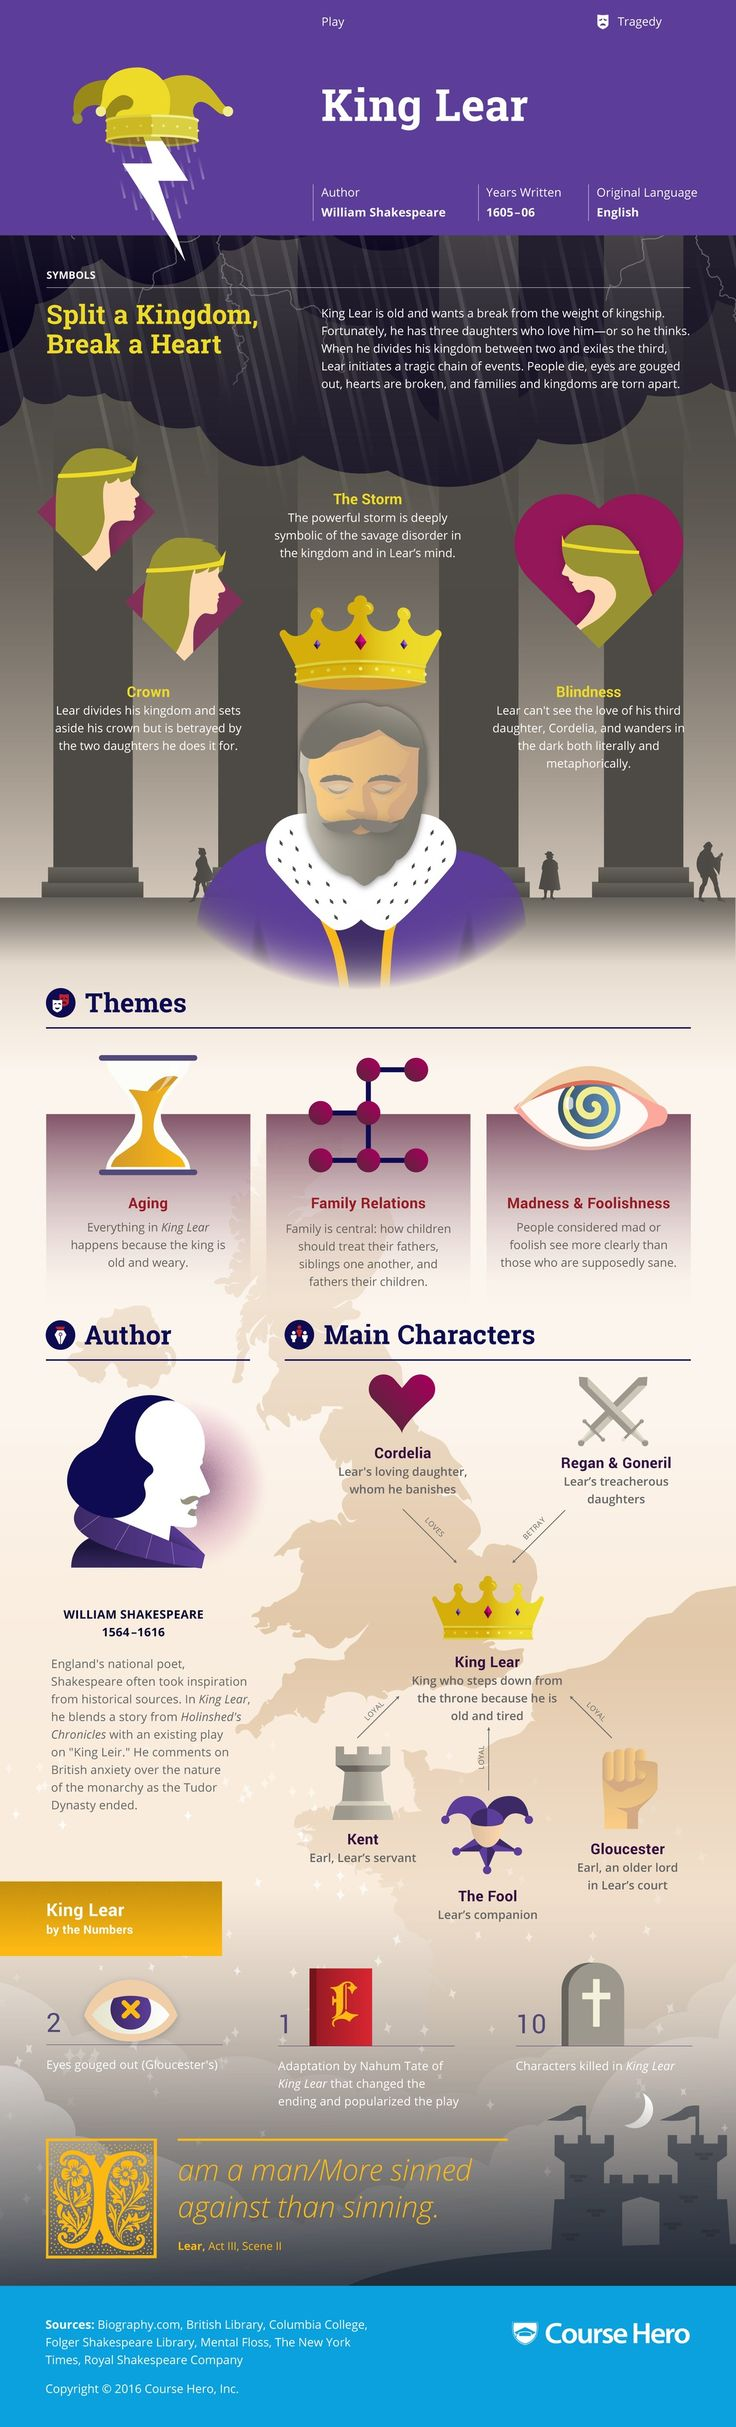 King Lear Infographic   Course Hero